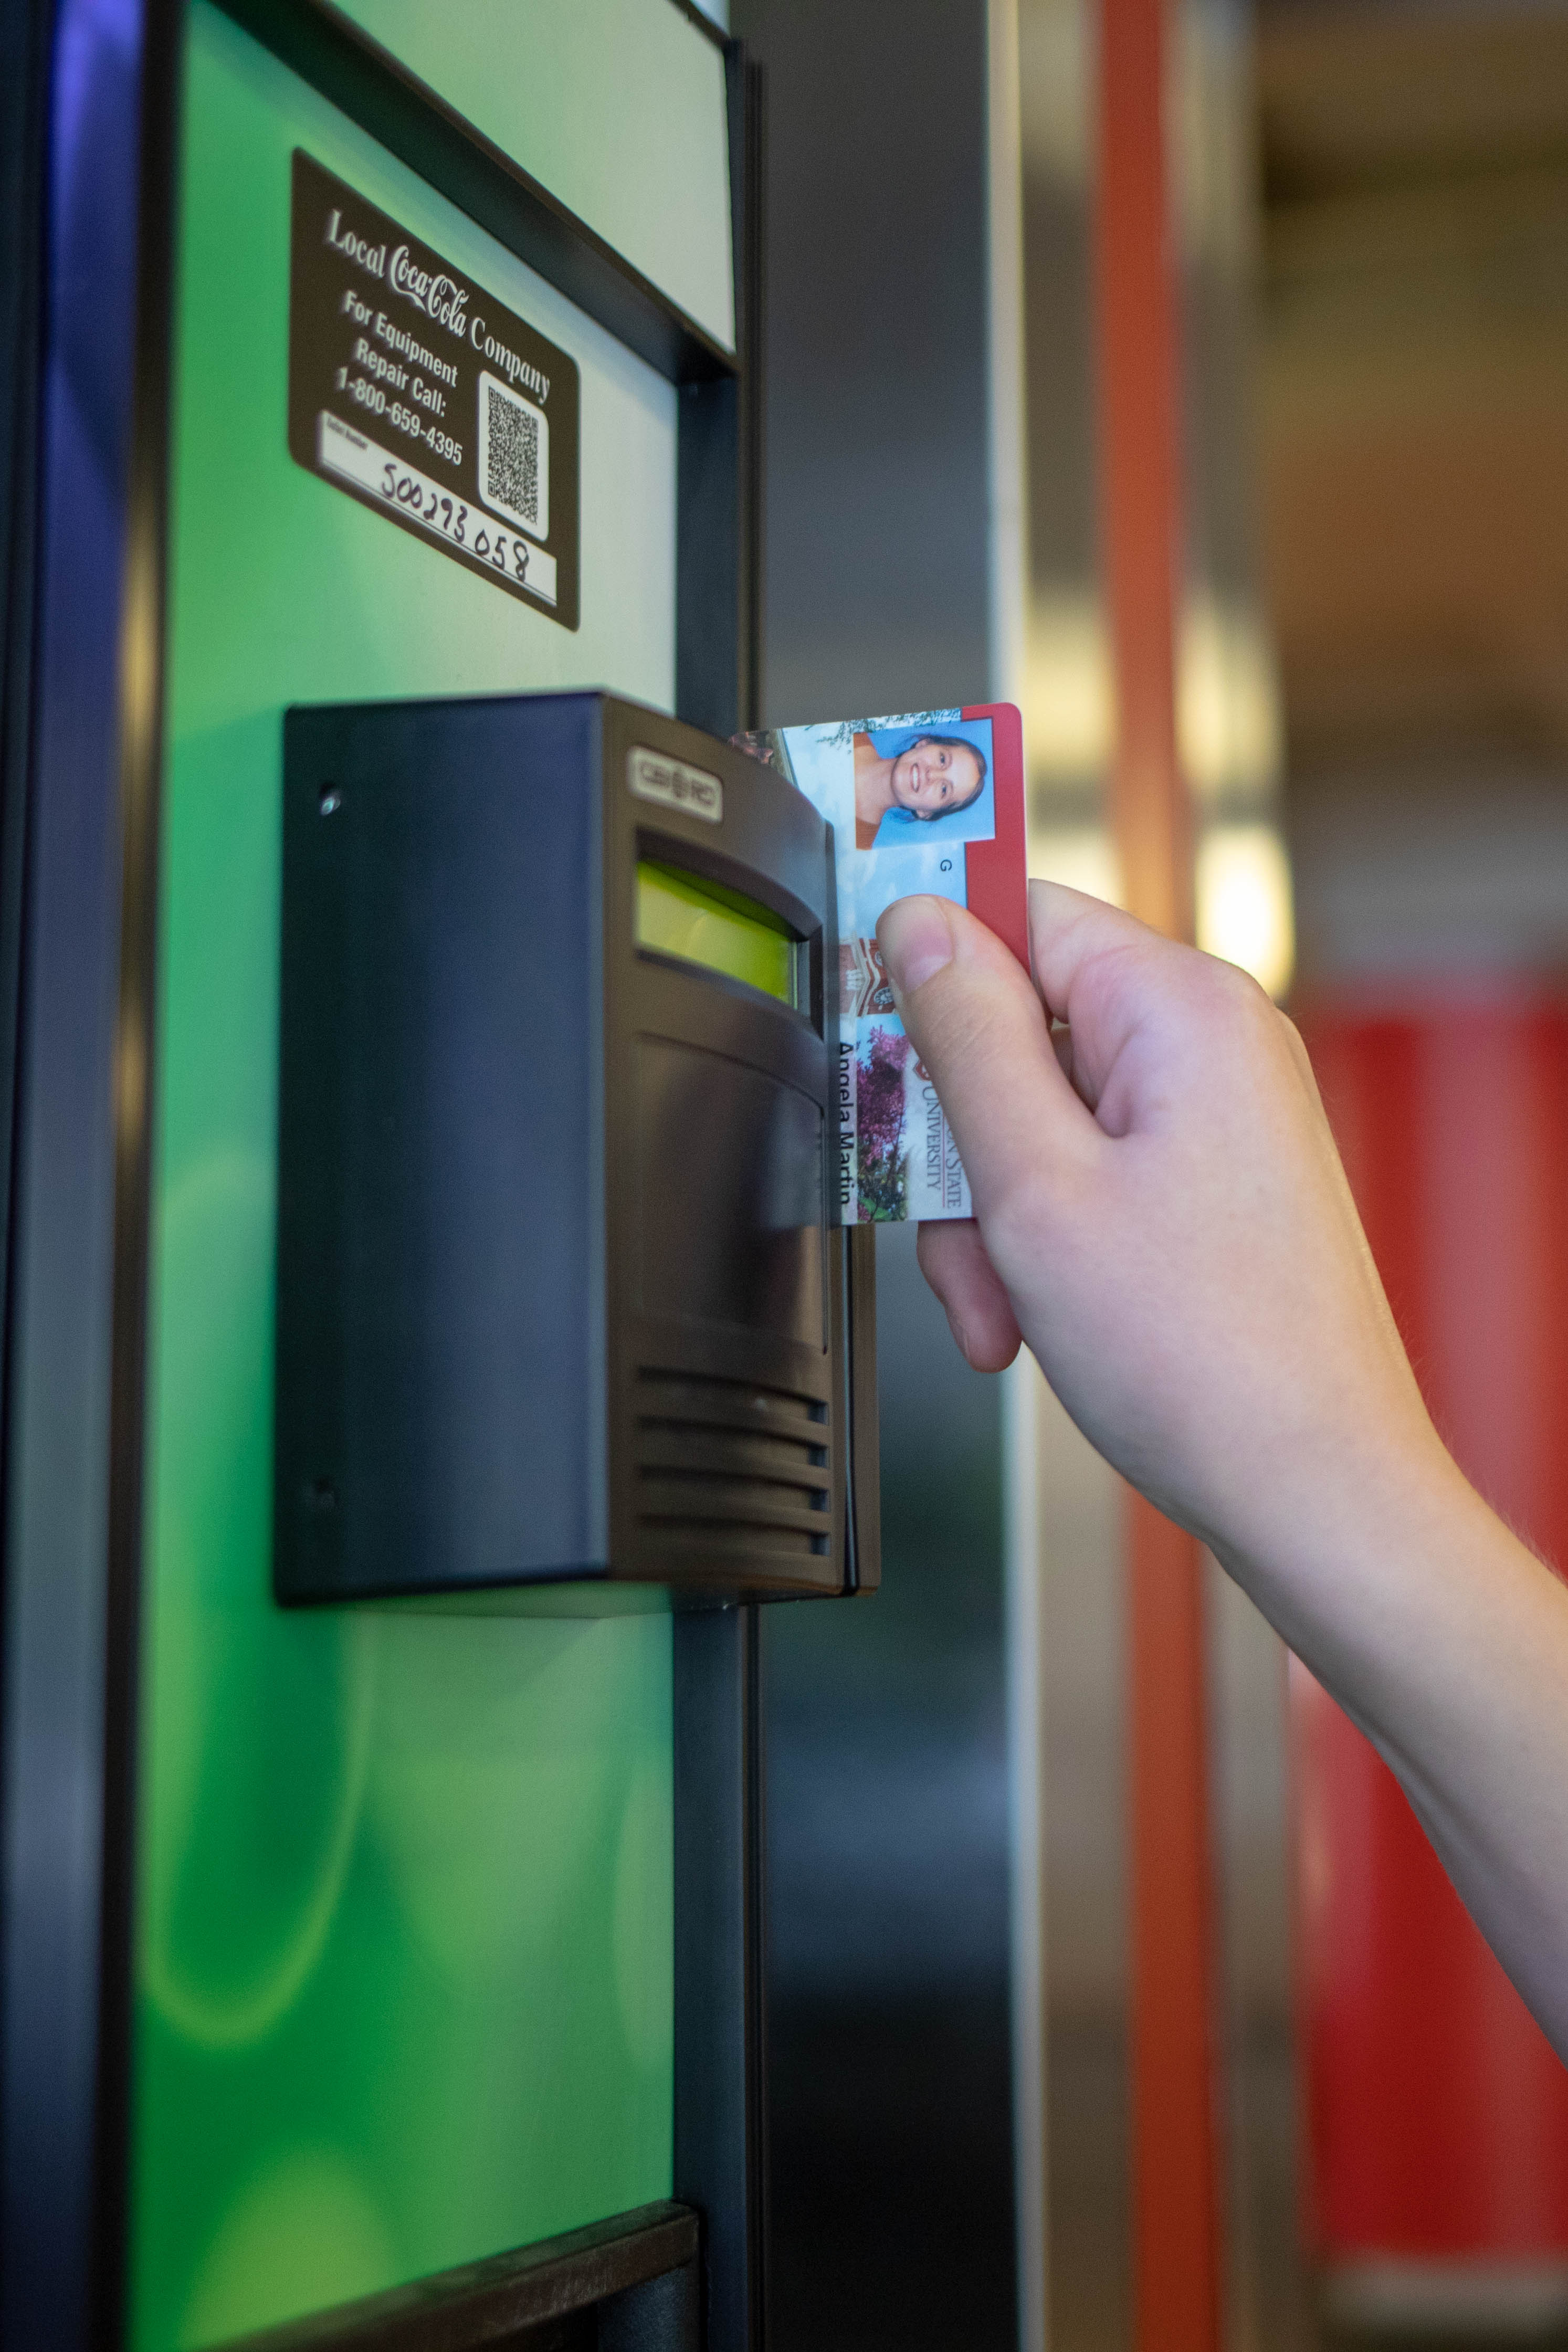 Student using CougarCard in vending machine